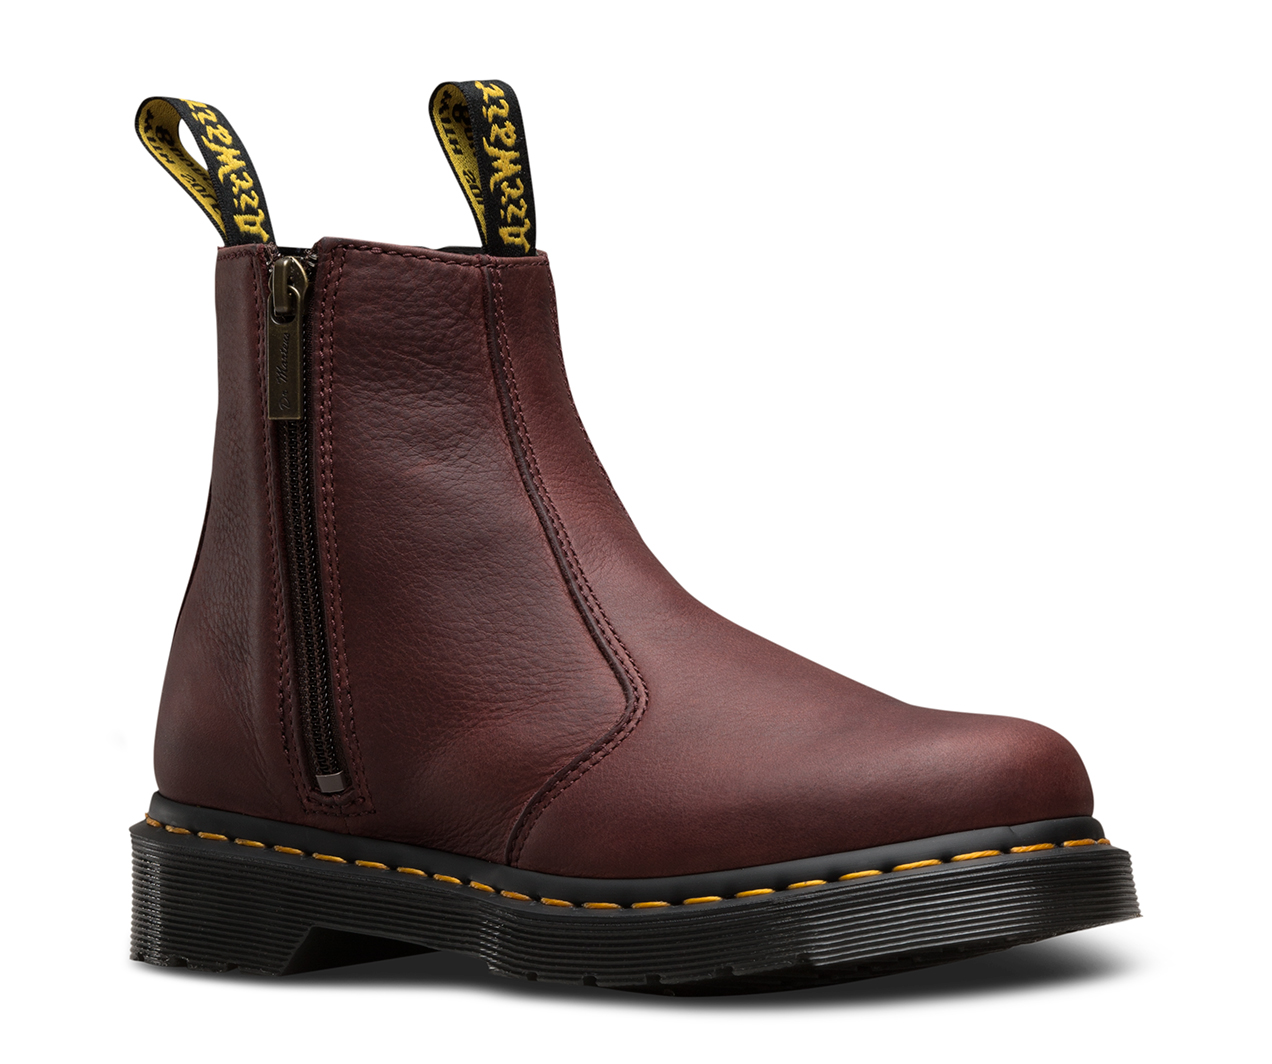 2976 w zip grizzly 2976 chelsea boots the official us dr martens store. Black Bedroom Furniture Sets. Home Design Ideas